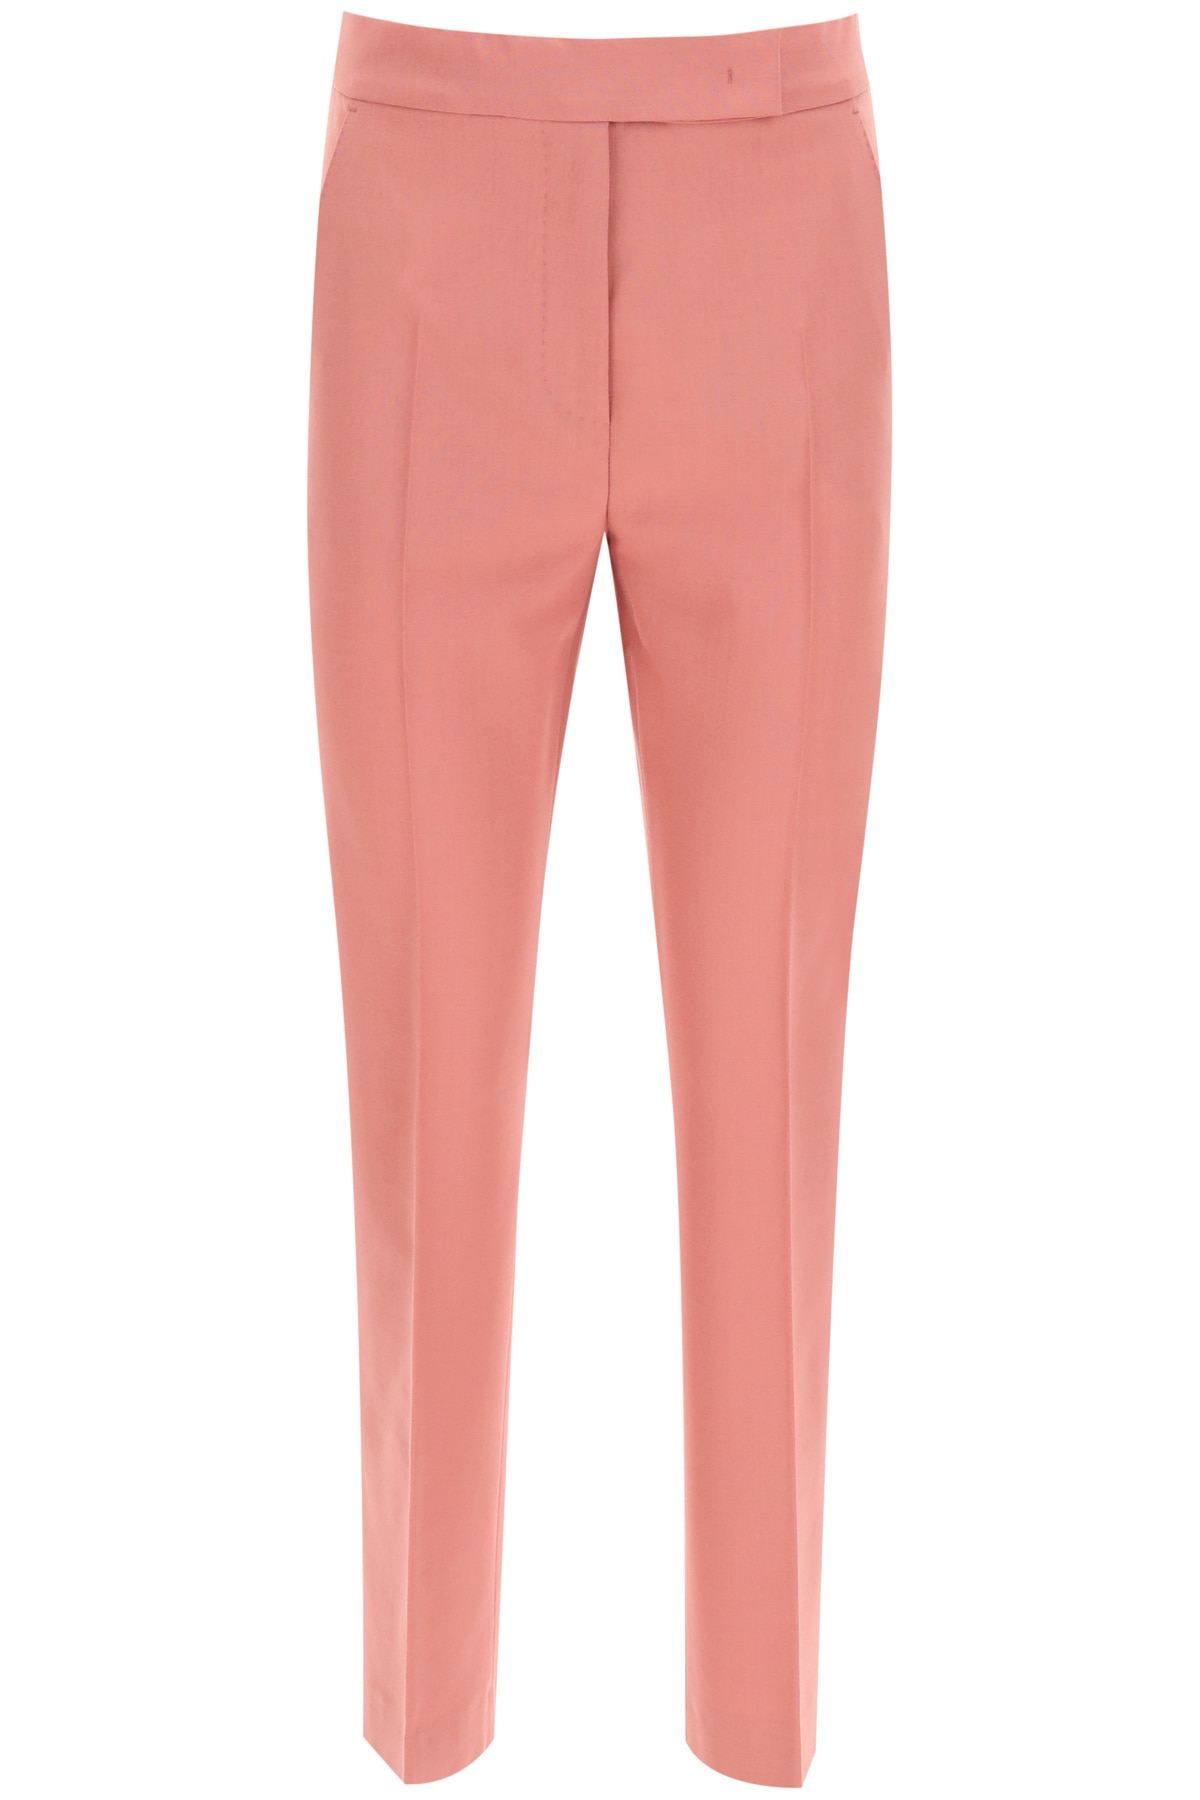 Max Mara Tempo Trousers In Mohair Wool 38 Pink Wool